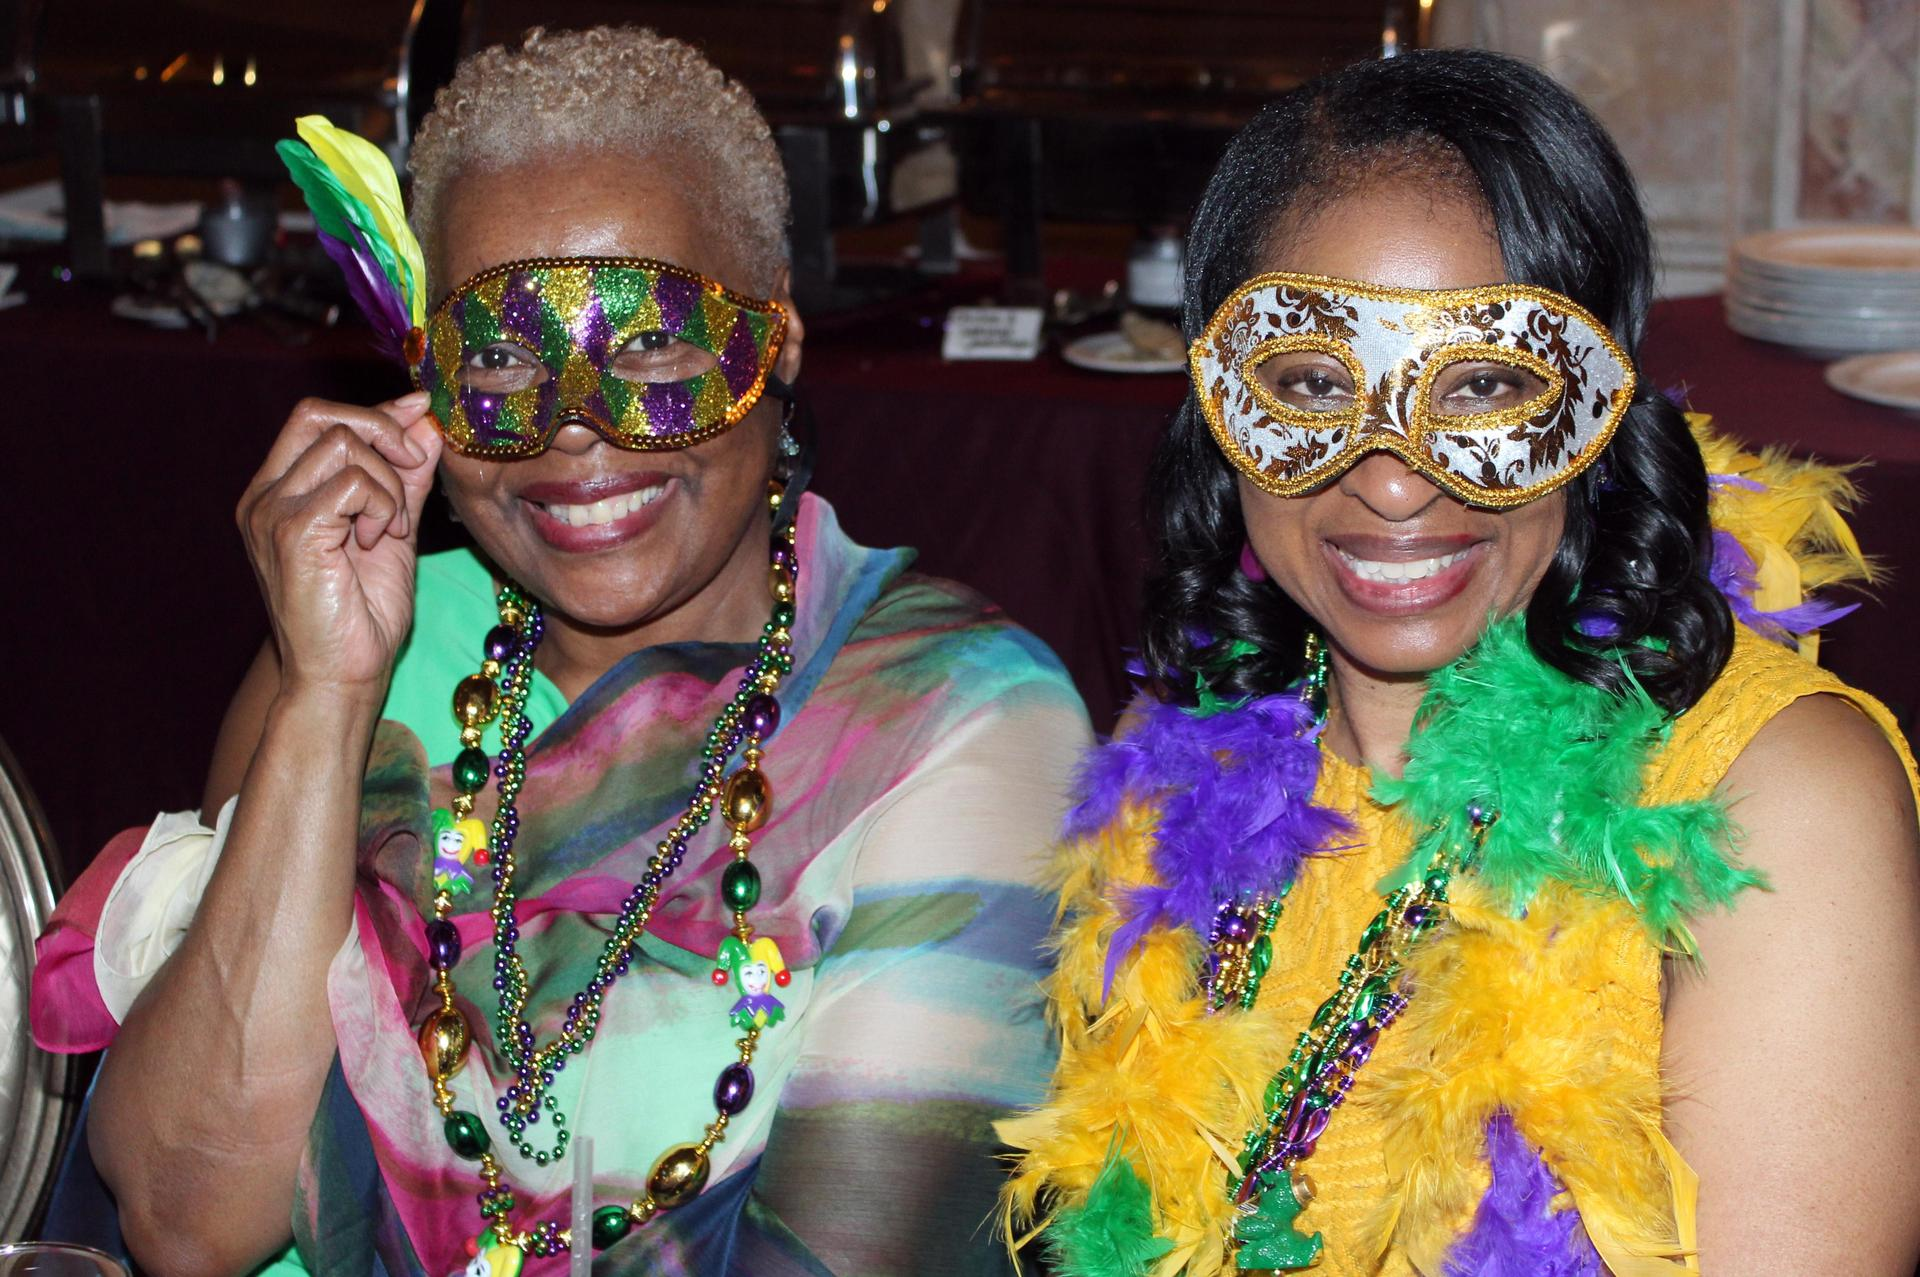 Two ladies in Mardi Gras masks